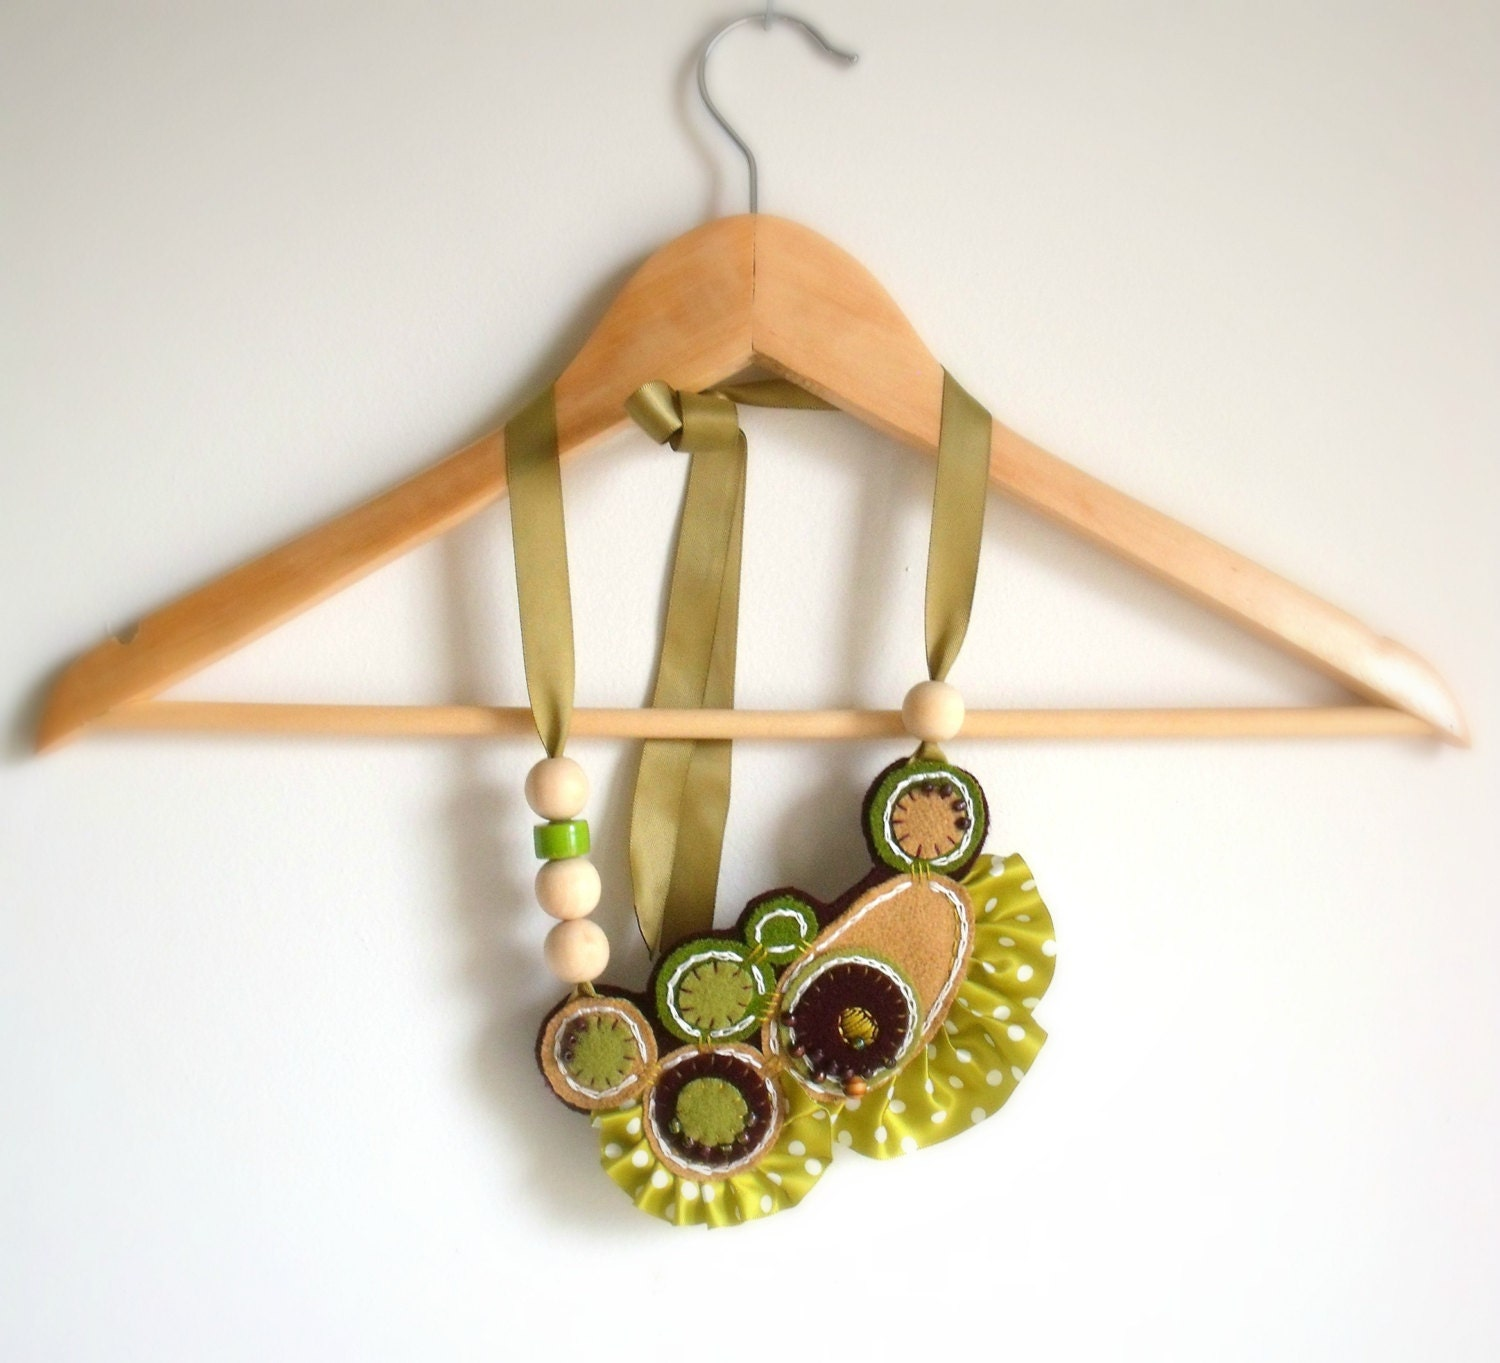 Felt Statement Necklace / Handmade Embroidered Bib Necklace / Lime Green Ruffled Necklace /  Recycled Beaded Necklace - ThePennyRunner